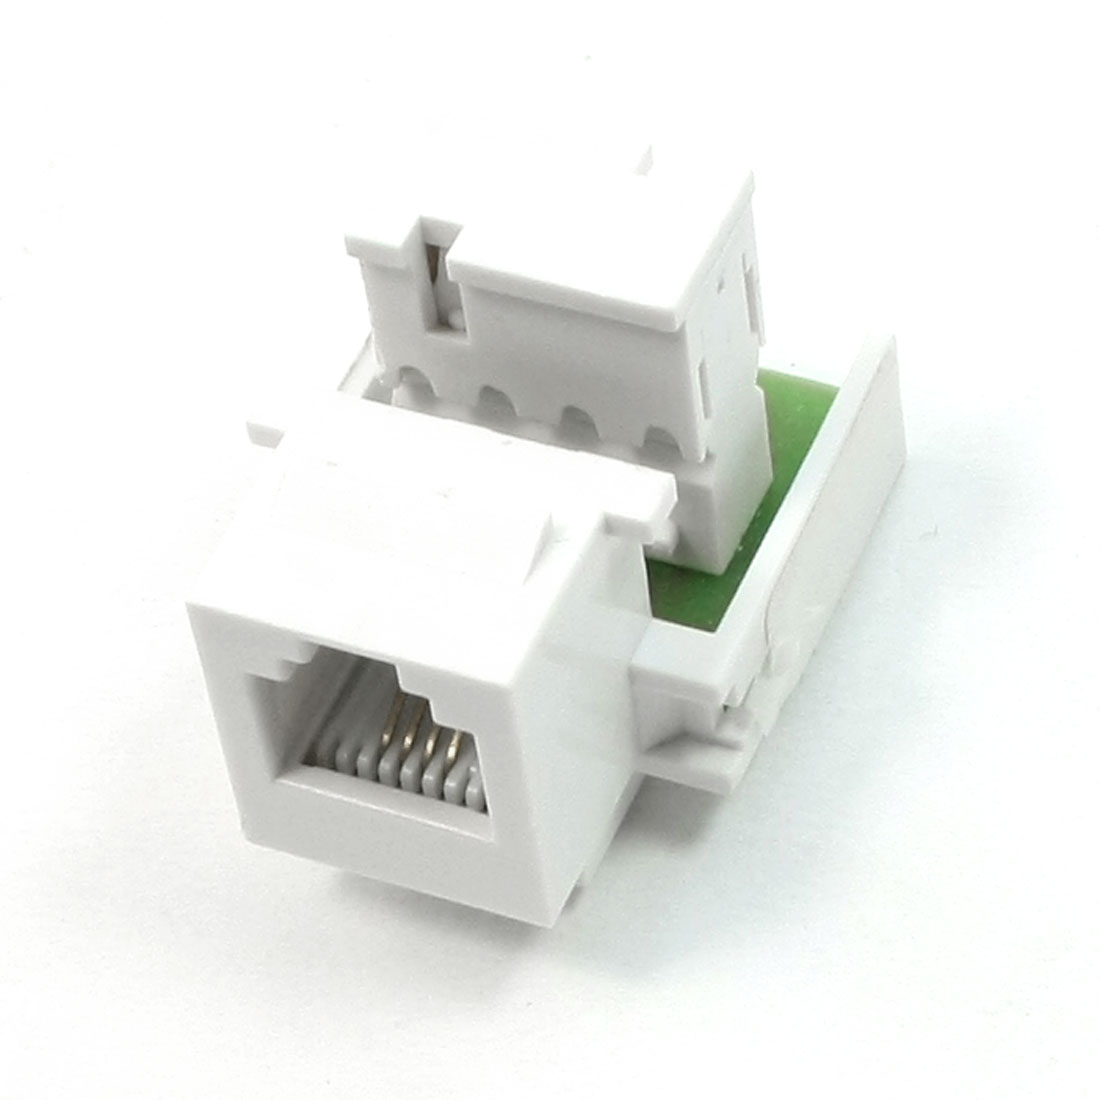 LAN ADSL Network Devices Connecting White RJ11 CAT3 Module